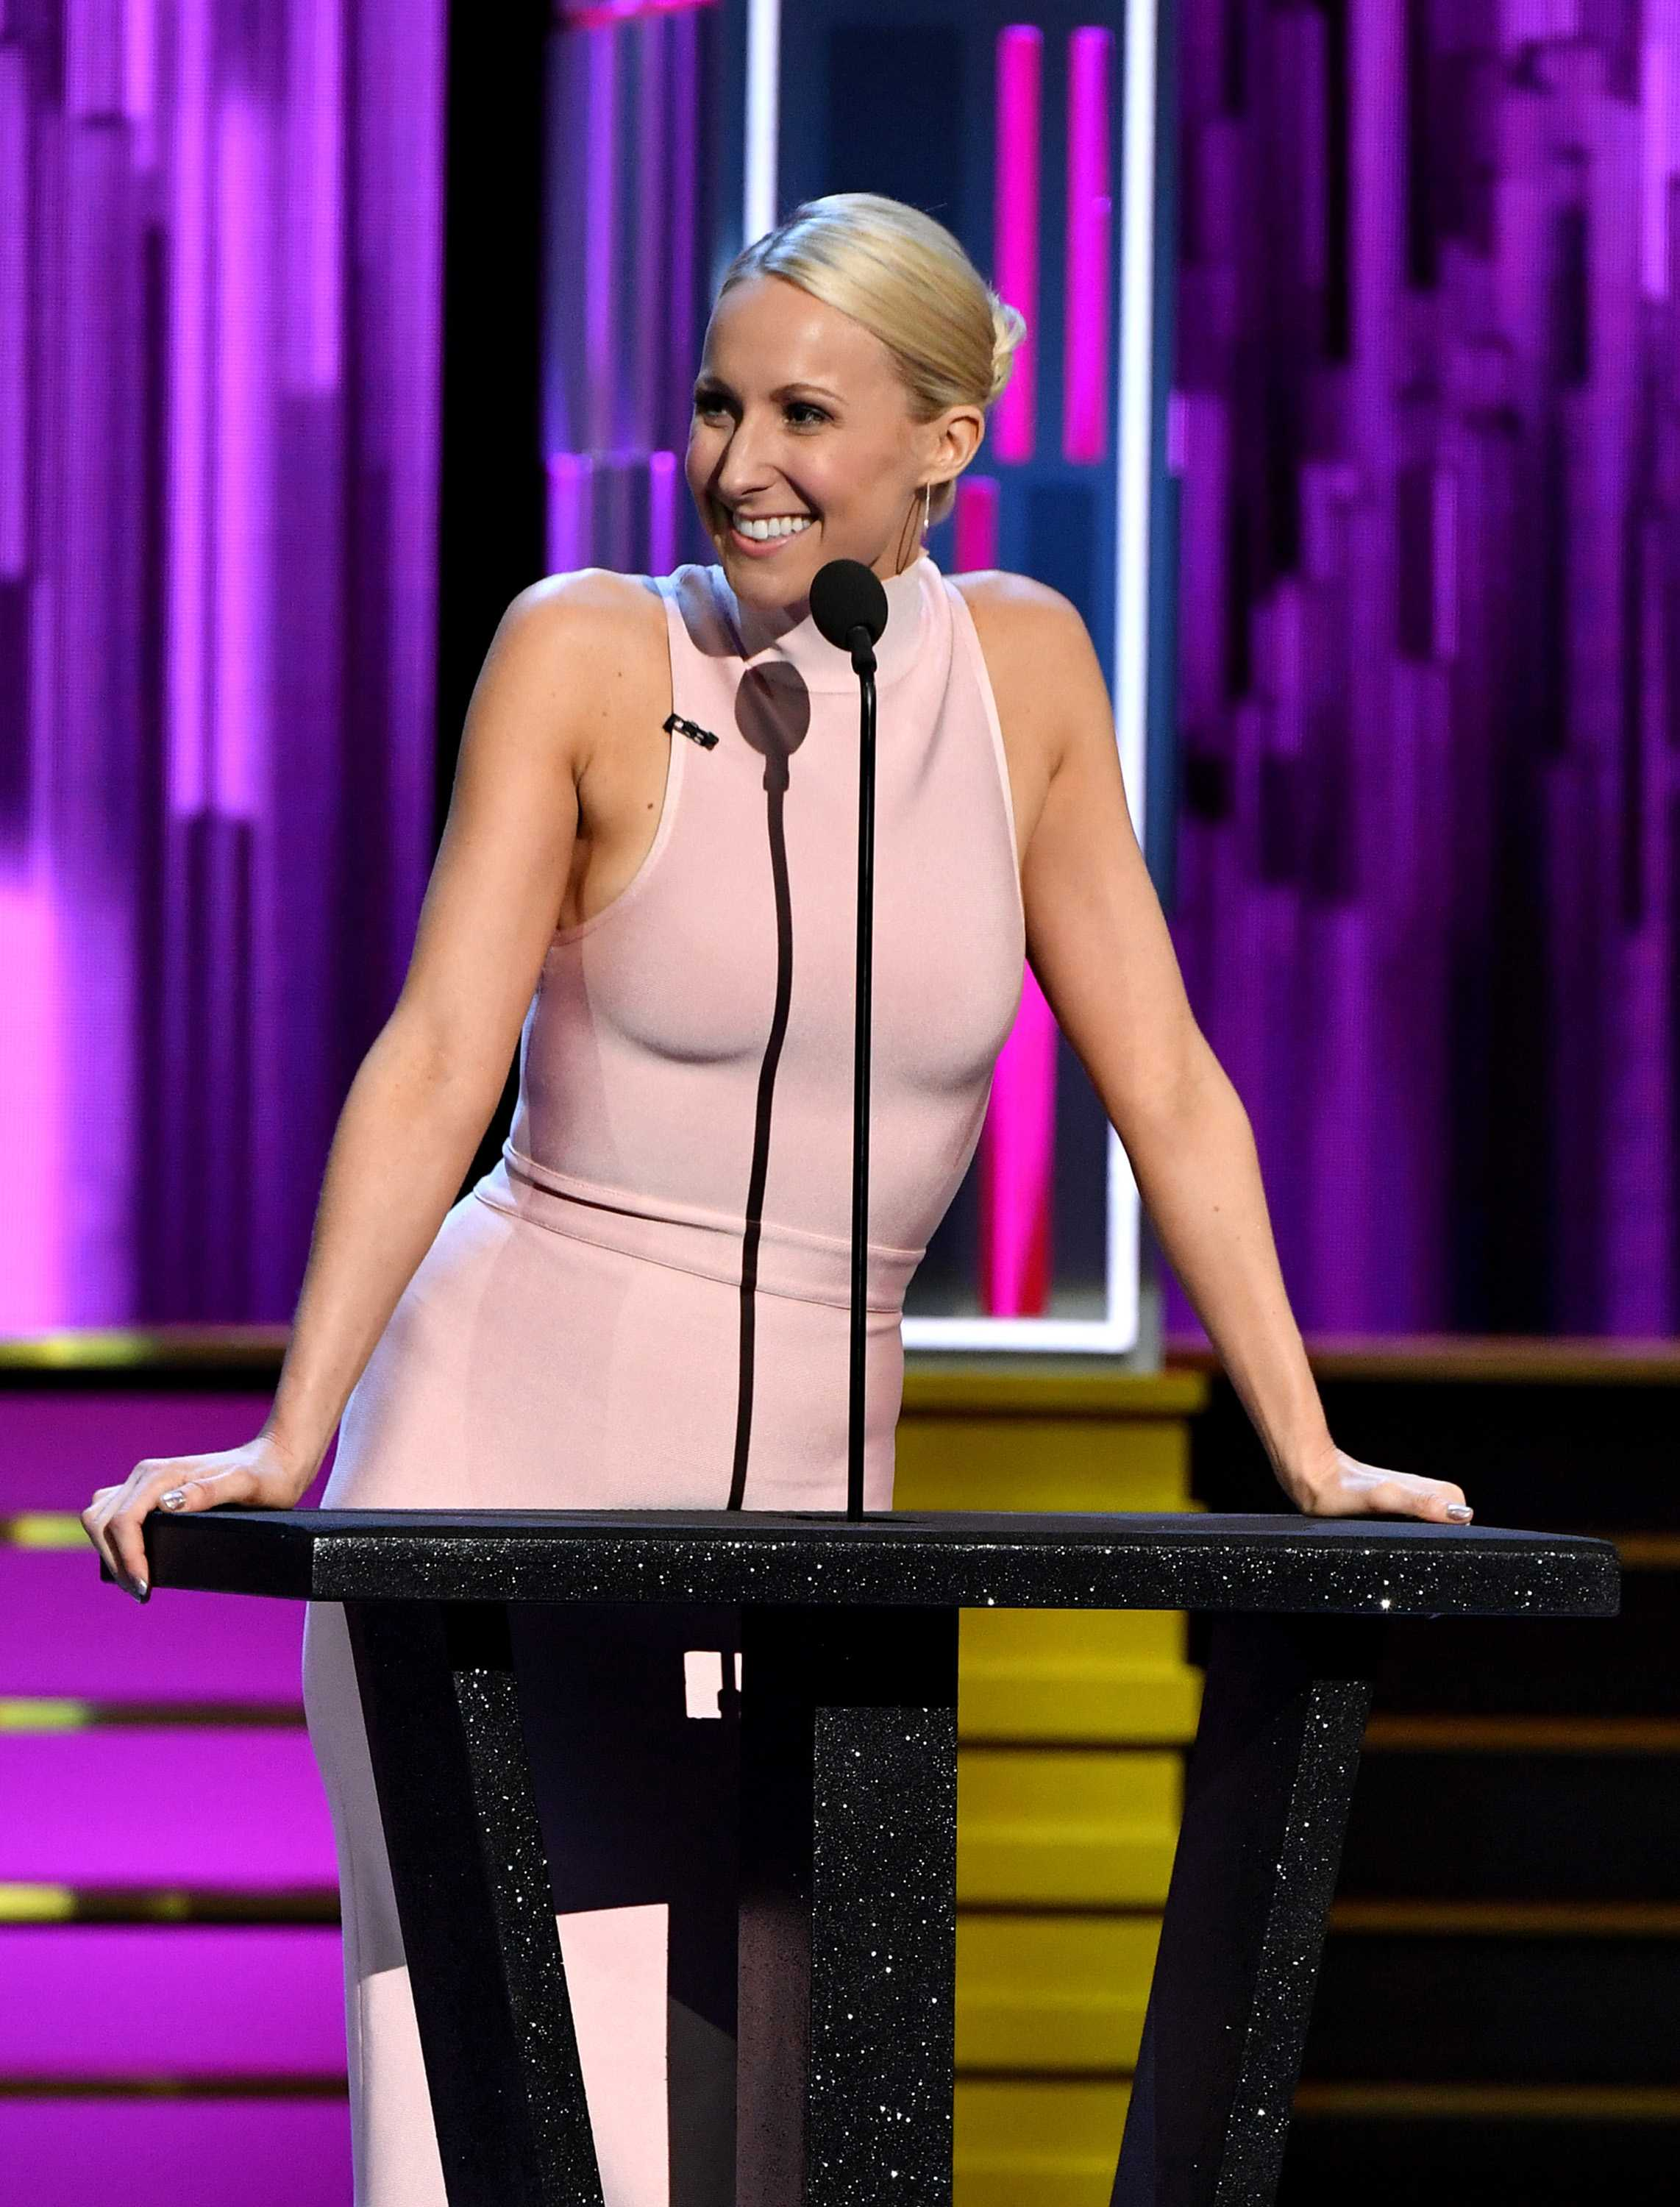 Nikki Glaser speaks at the Comedy Central Roast of Rob Lowe on Aug. 27, 2016 in Los Angeles. (Latour/Rex Shutterstock/Zuma Press/TNS)